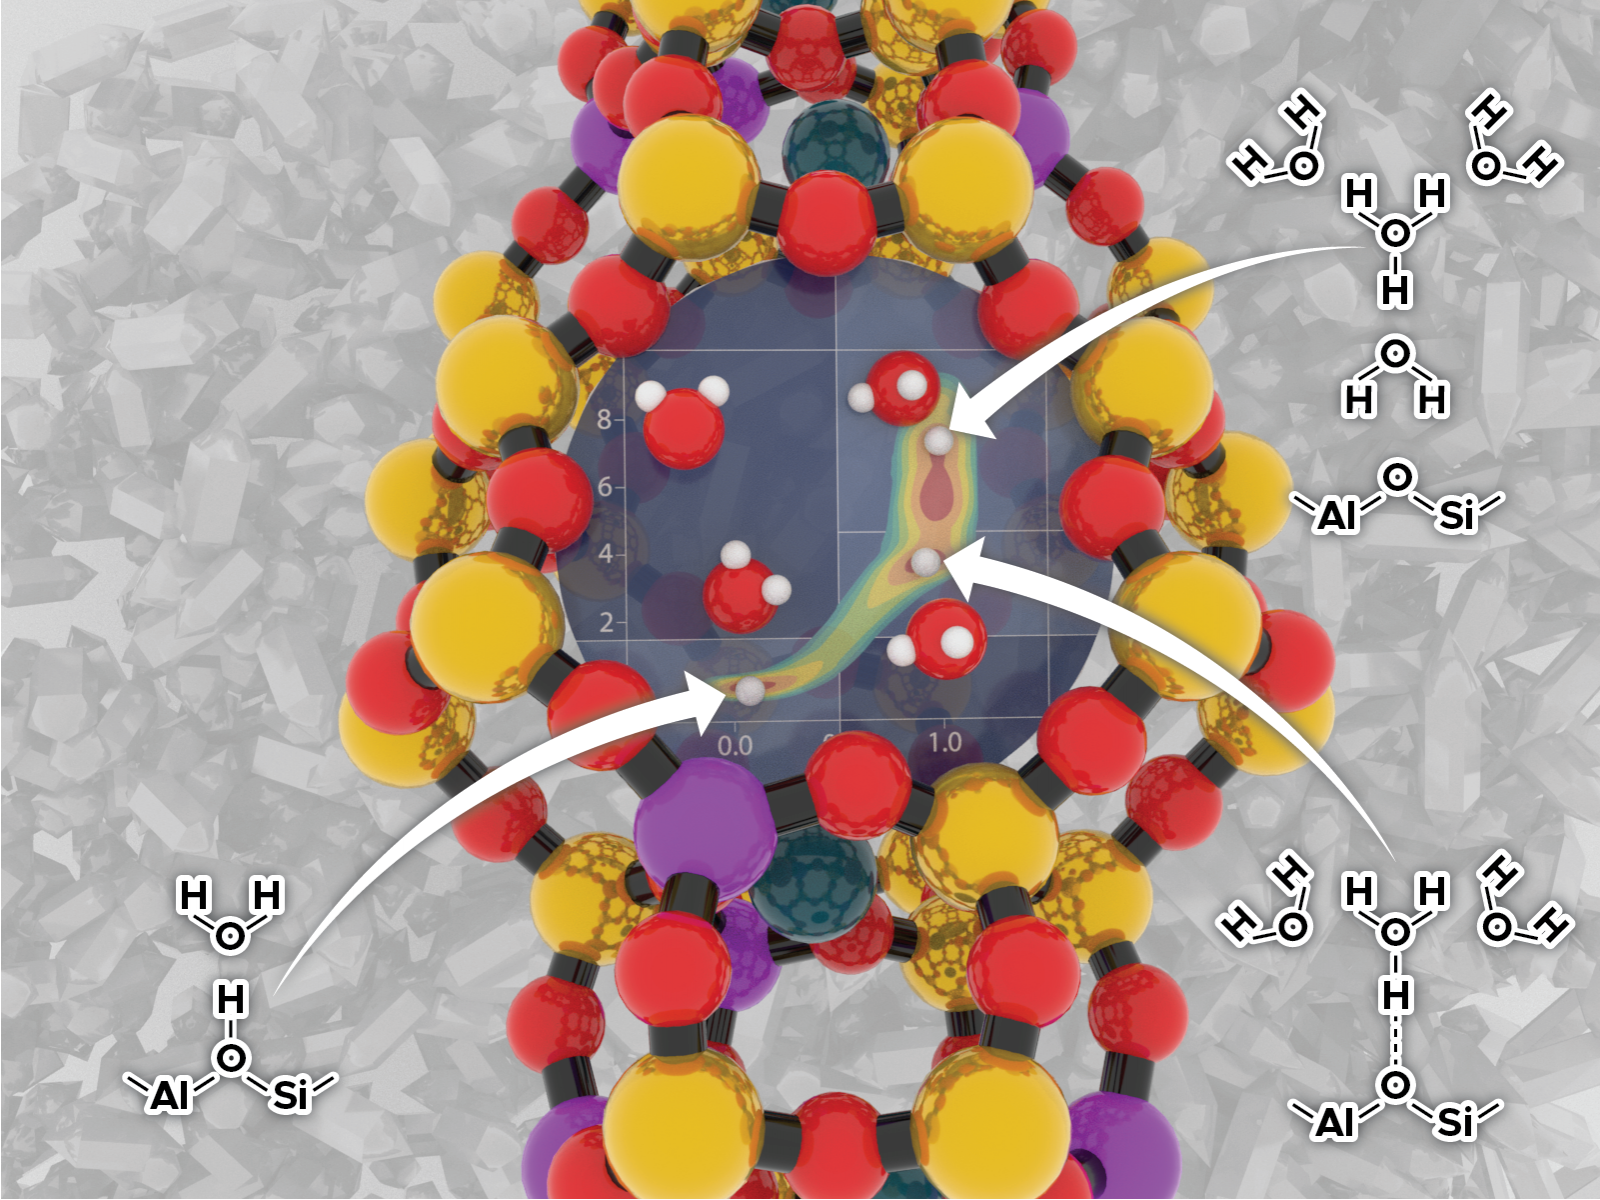 Water Clusters Control Zeolite Reactivity - technology